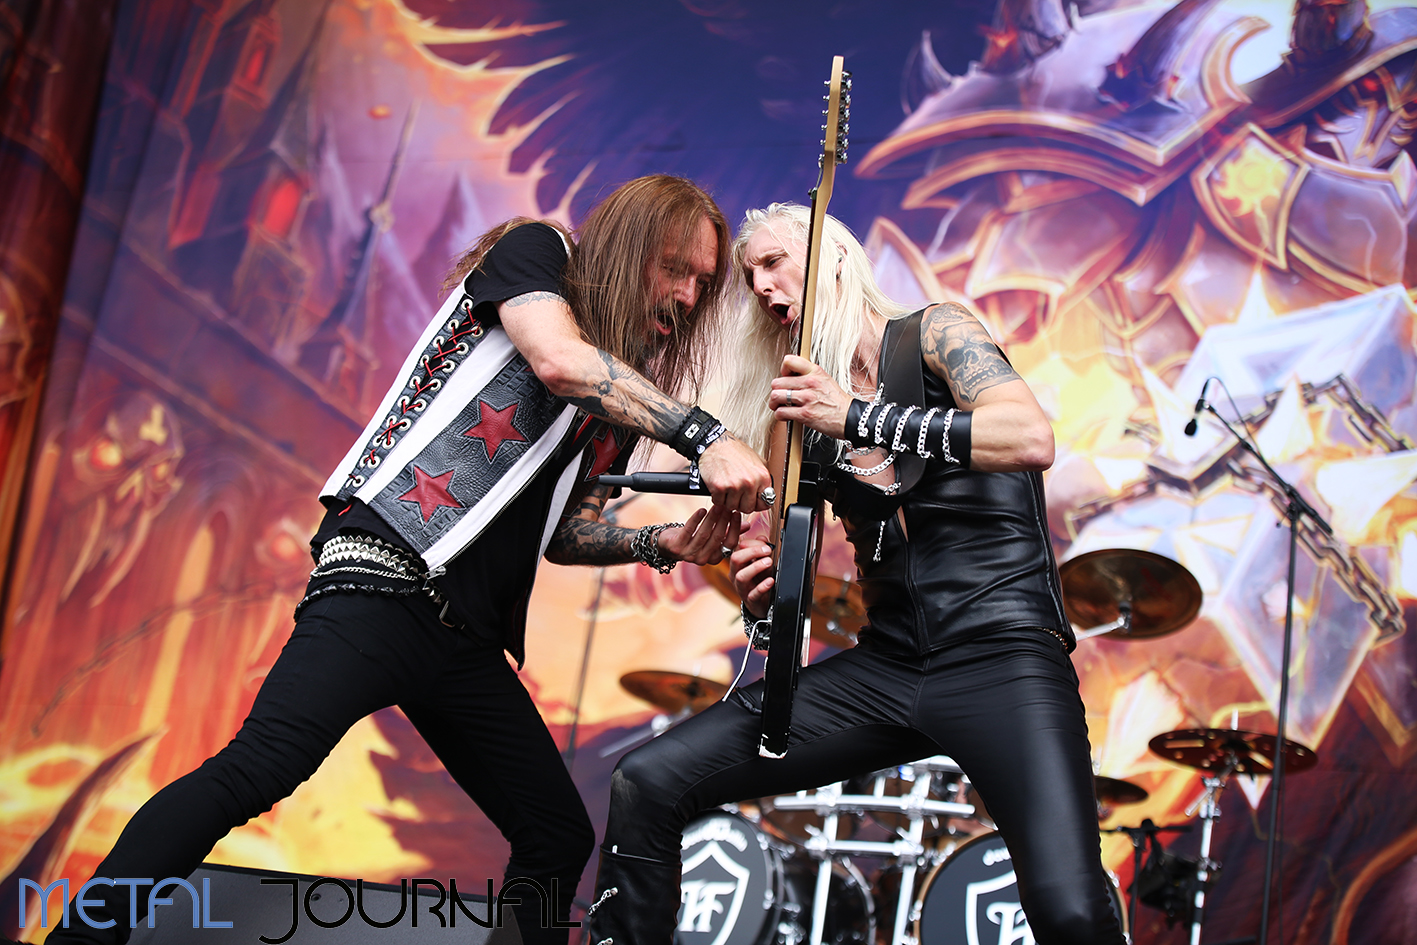 hammerfall - metal journal rock fest barcelona 2019 pic 4